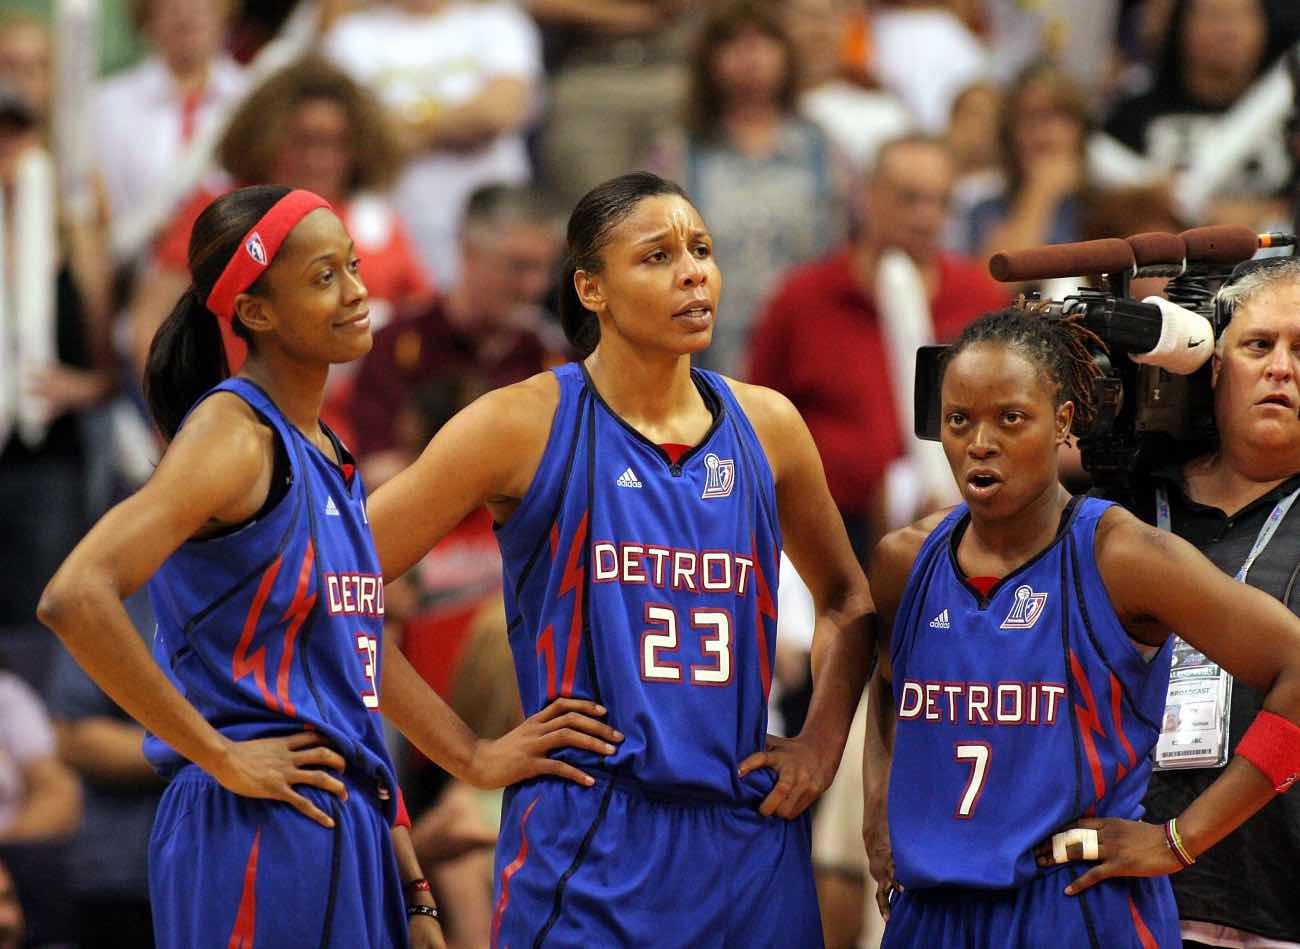 PHOENIX - SEPTEMBER 11: Detroit Shock players Swin Cash #32, Plenette Pierson #23 and Shannon Johnson #7 stand on the sideline against the Phoenix Mercury in Game 3 of the WNBA Finals on September 11, 2007 at US Airways Center in Phoenix, Arizona. Detroit won 88-83 to take a 2-1 lead in the series. (Photo by Domenic Centofanti/Getty Images)